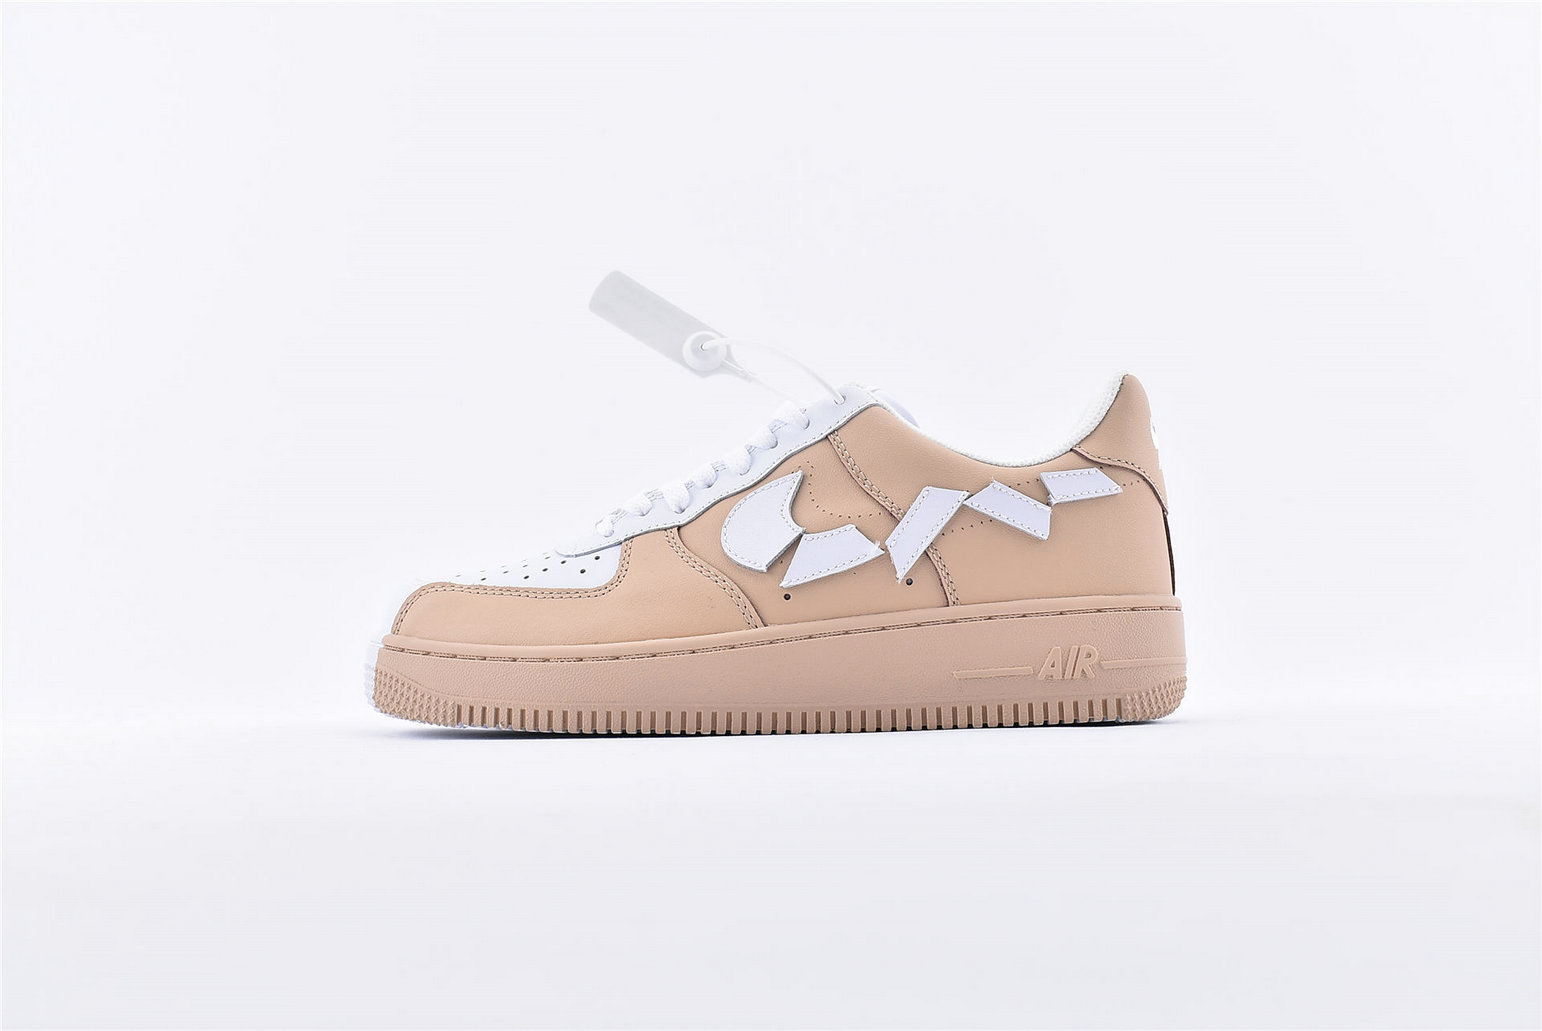 Where To Buy Wholesale Cheap Womens Nike Air Force 1 07 Wheat White 315124-200 - www.wholesaleflyknit.com